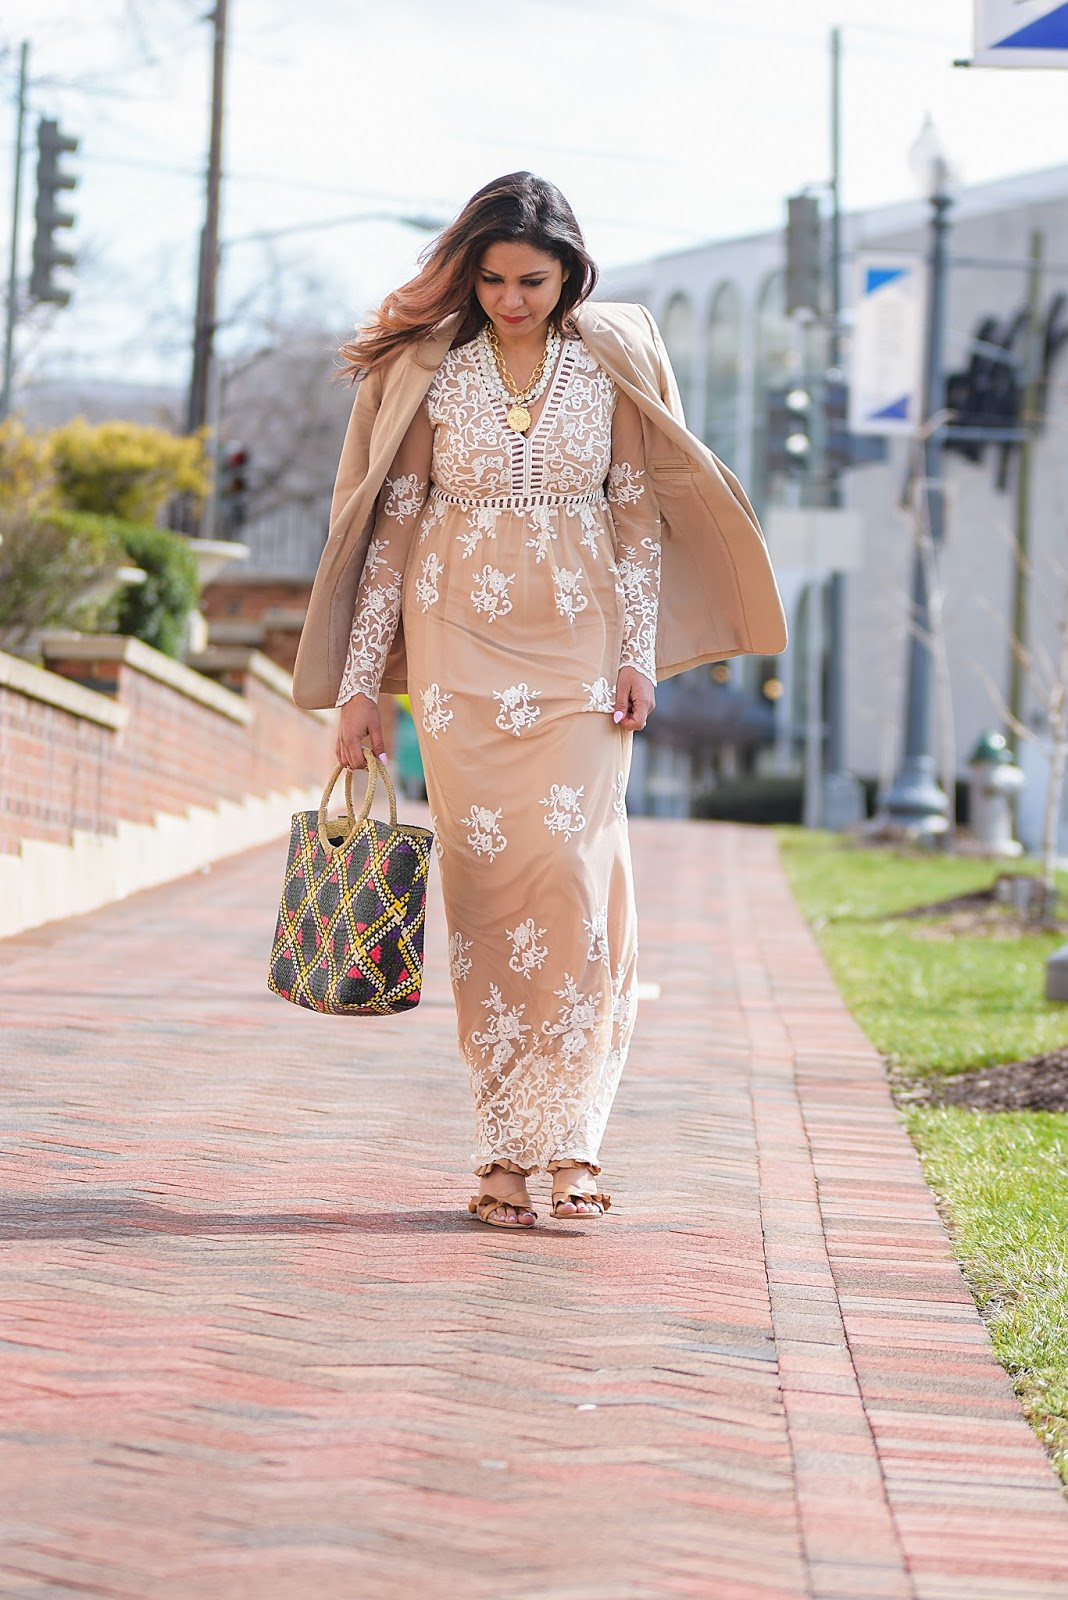 how to wear a lace dress. beige forever 21 lace dress, maxi spring outfit, ruffled heels, monochromatic outfit, street style, straw bag, wedding style, myriad musings